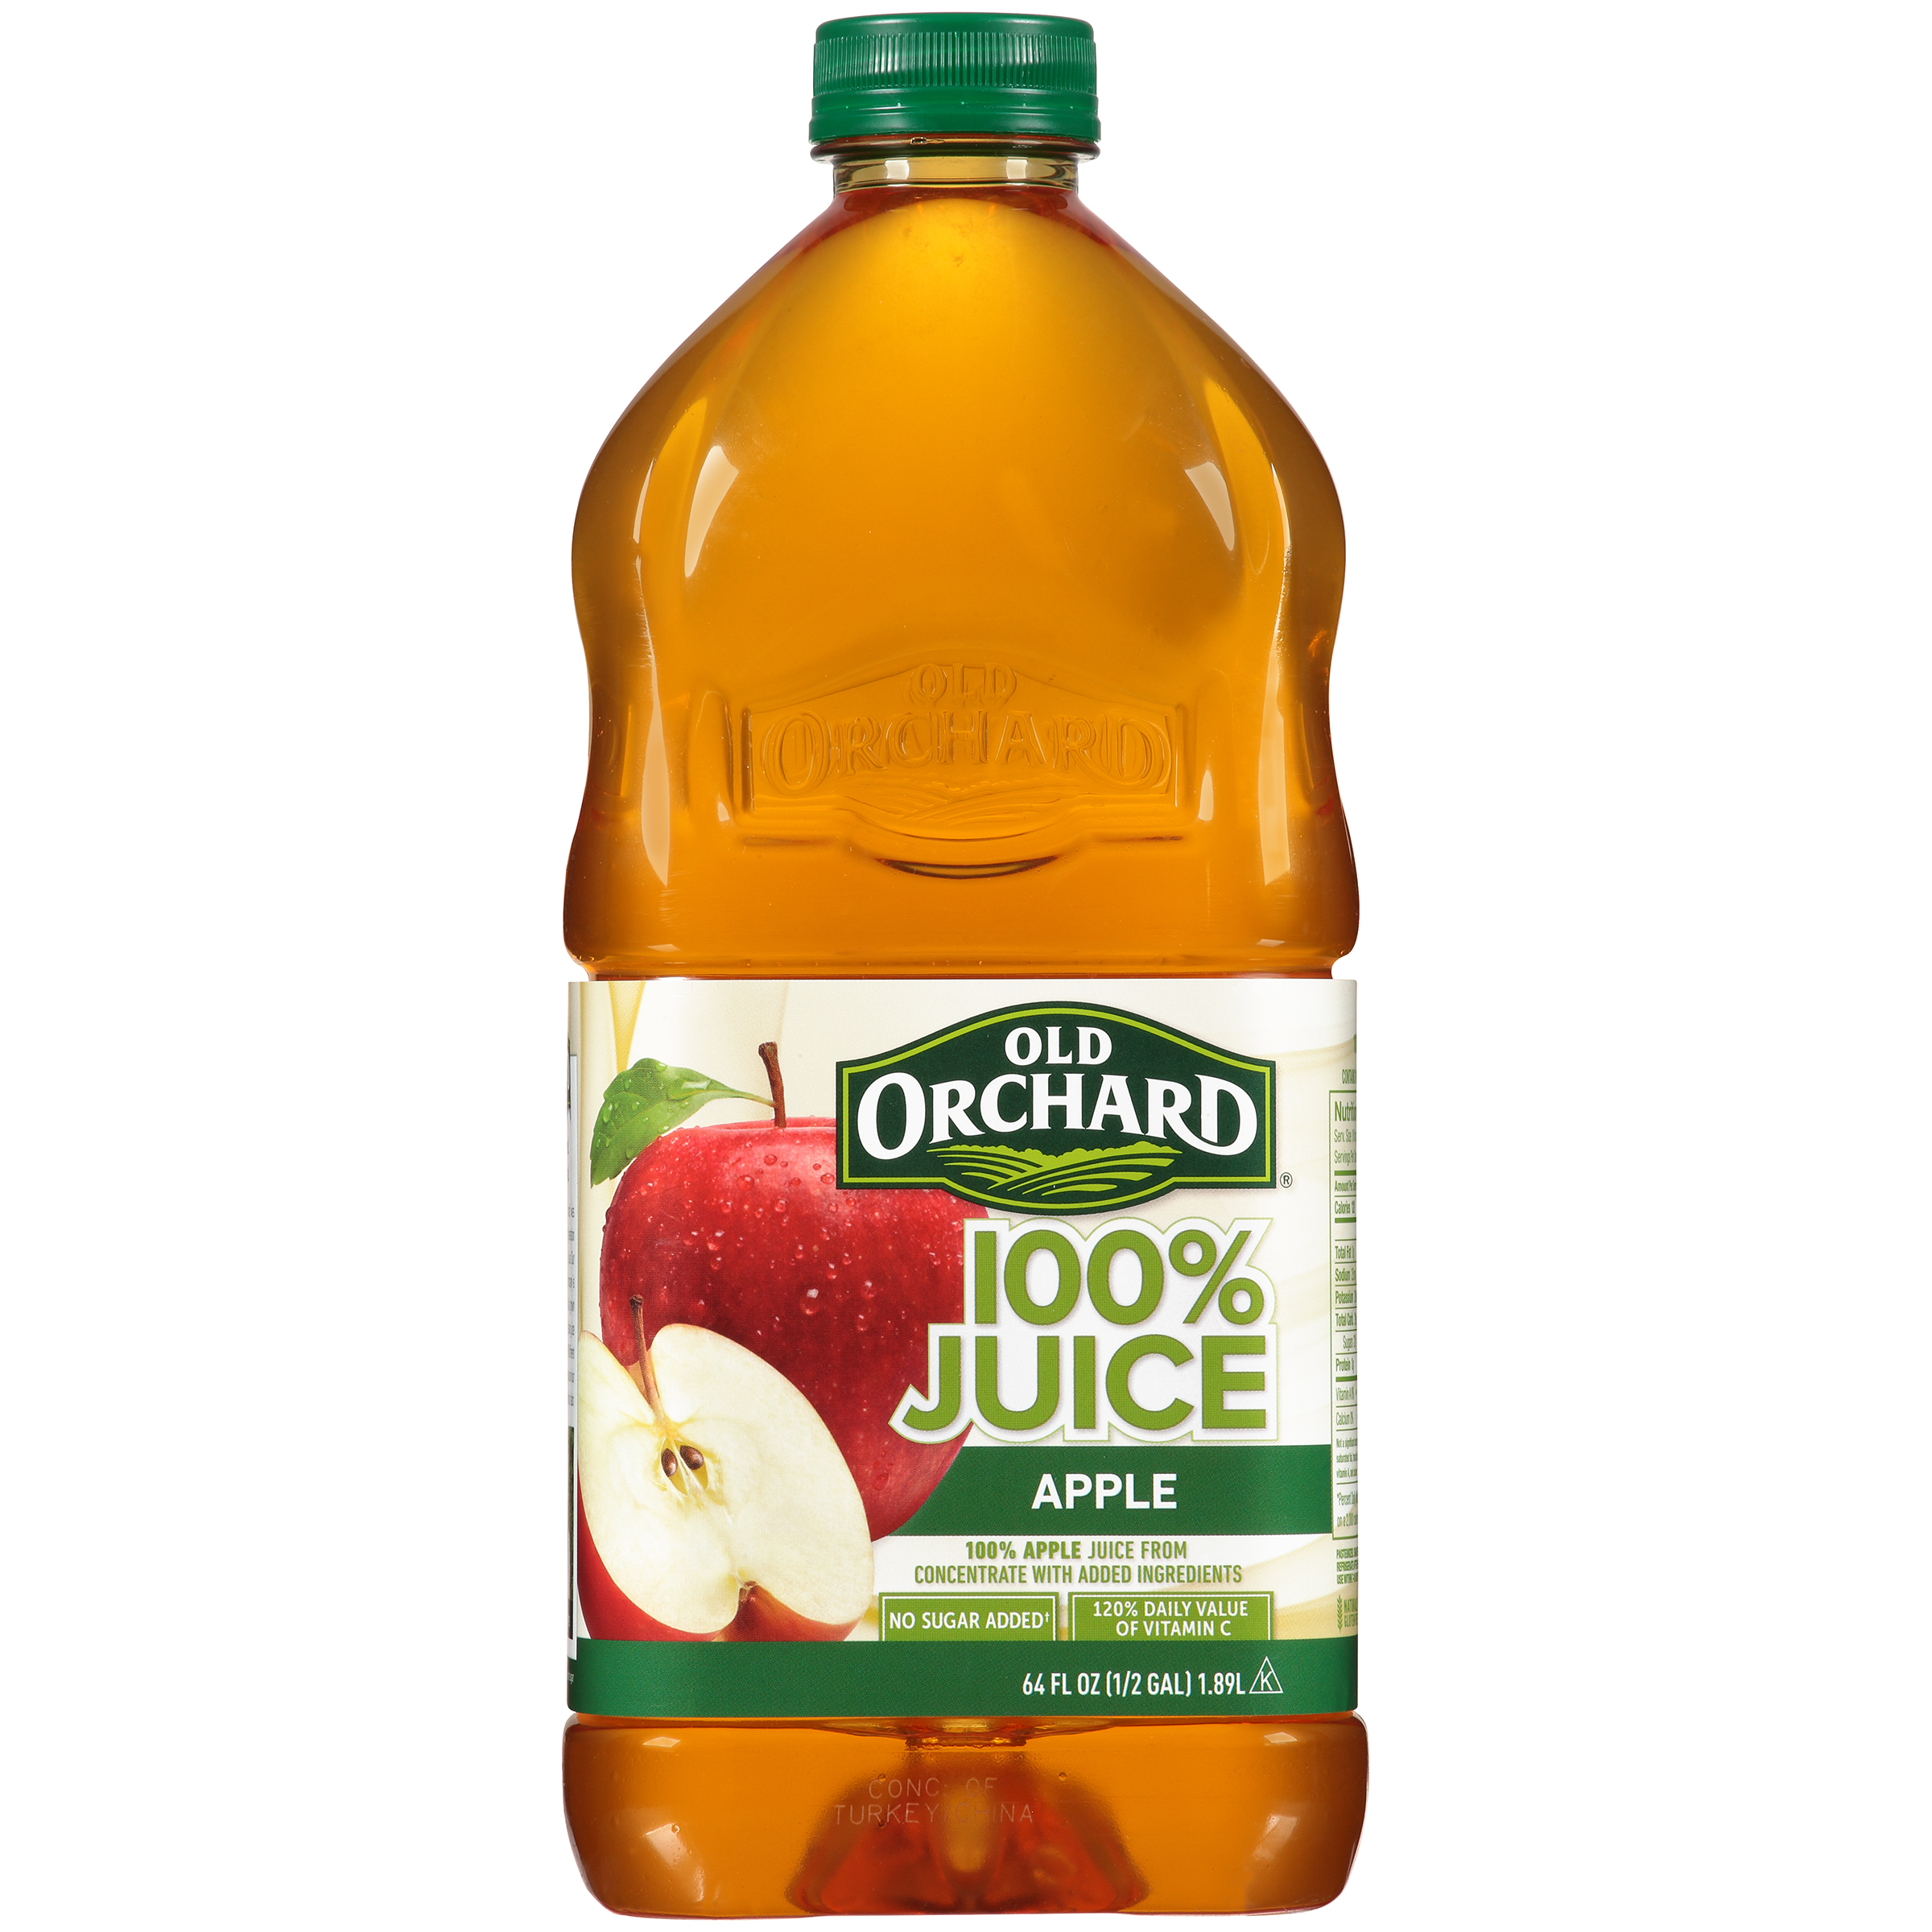 Old Orchard 100% Juice, Apple, 64 Fl Oz